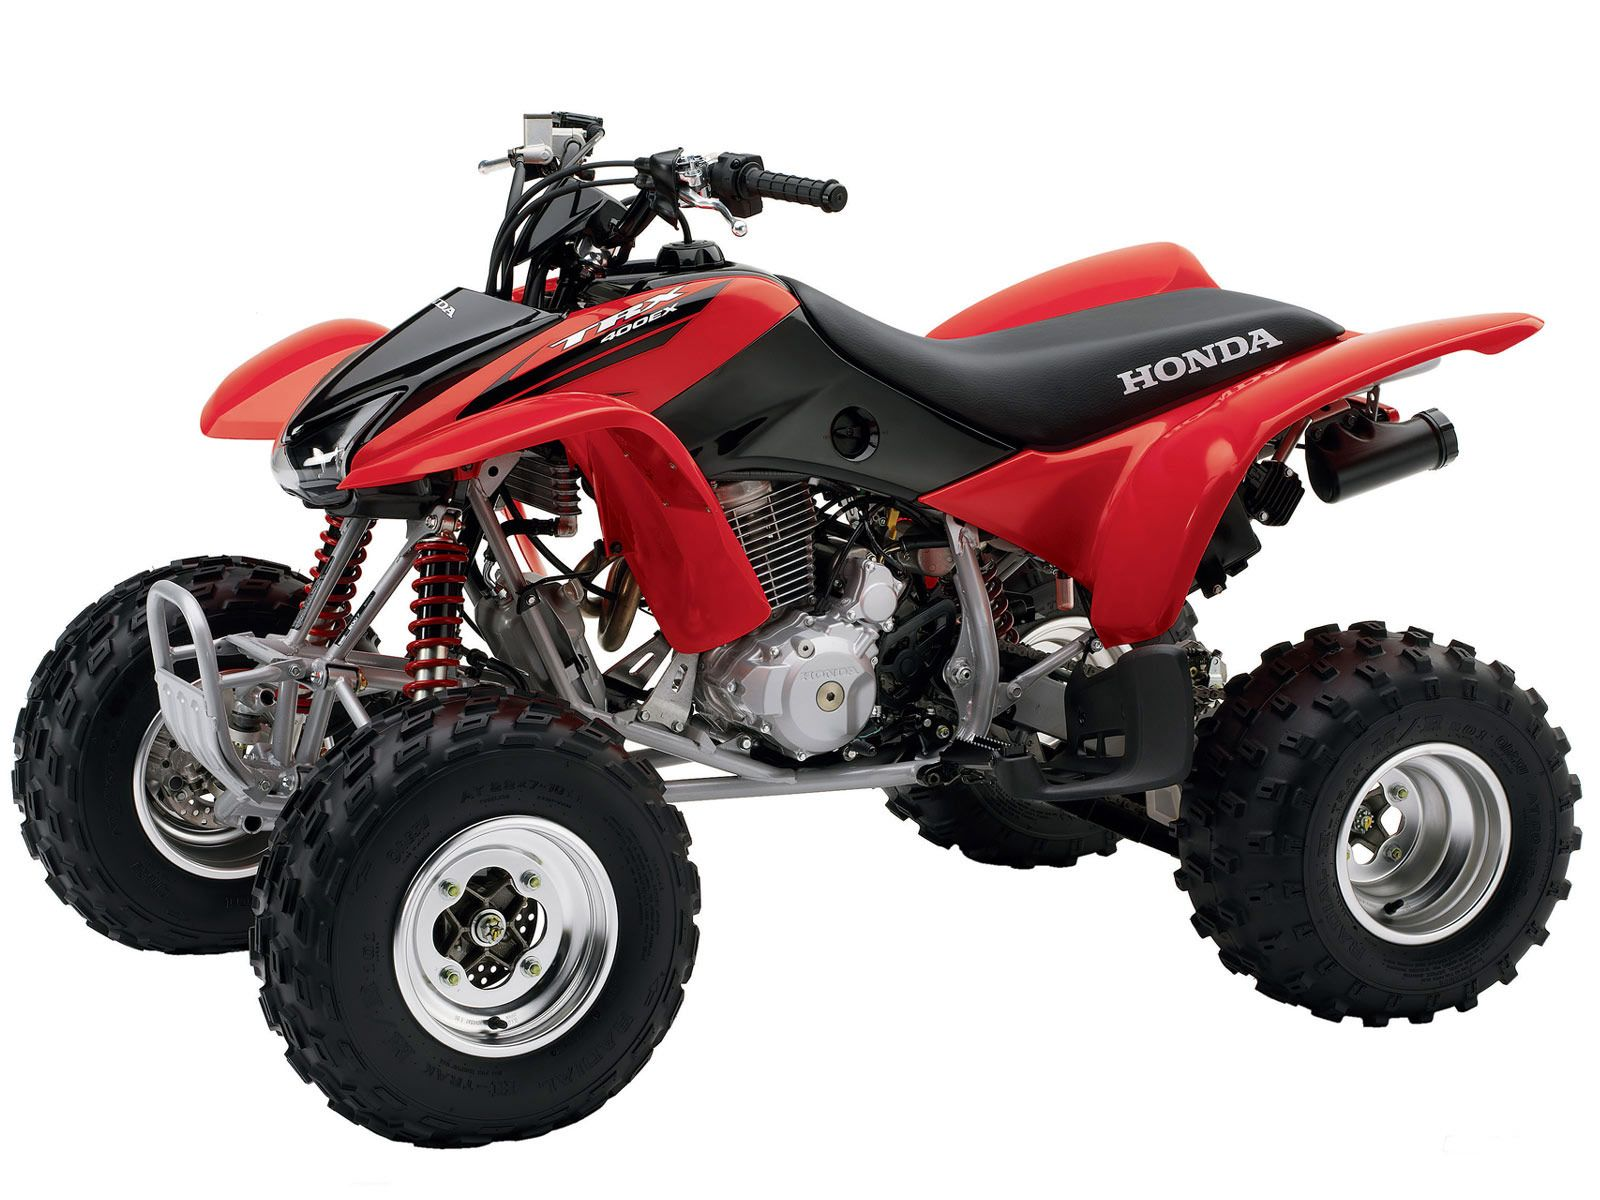 re by get of in banner youth the atv when image path honda rider side canada we quad right determined bikes feature dealers they them on started are ready